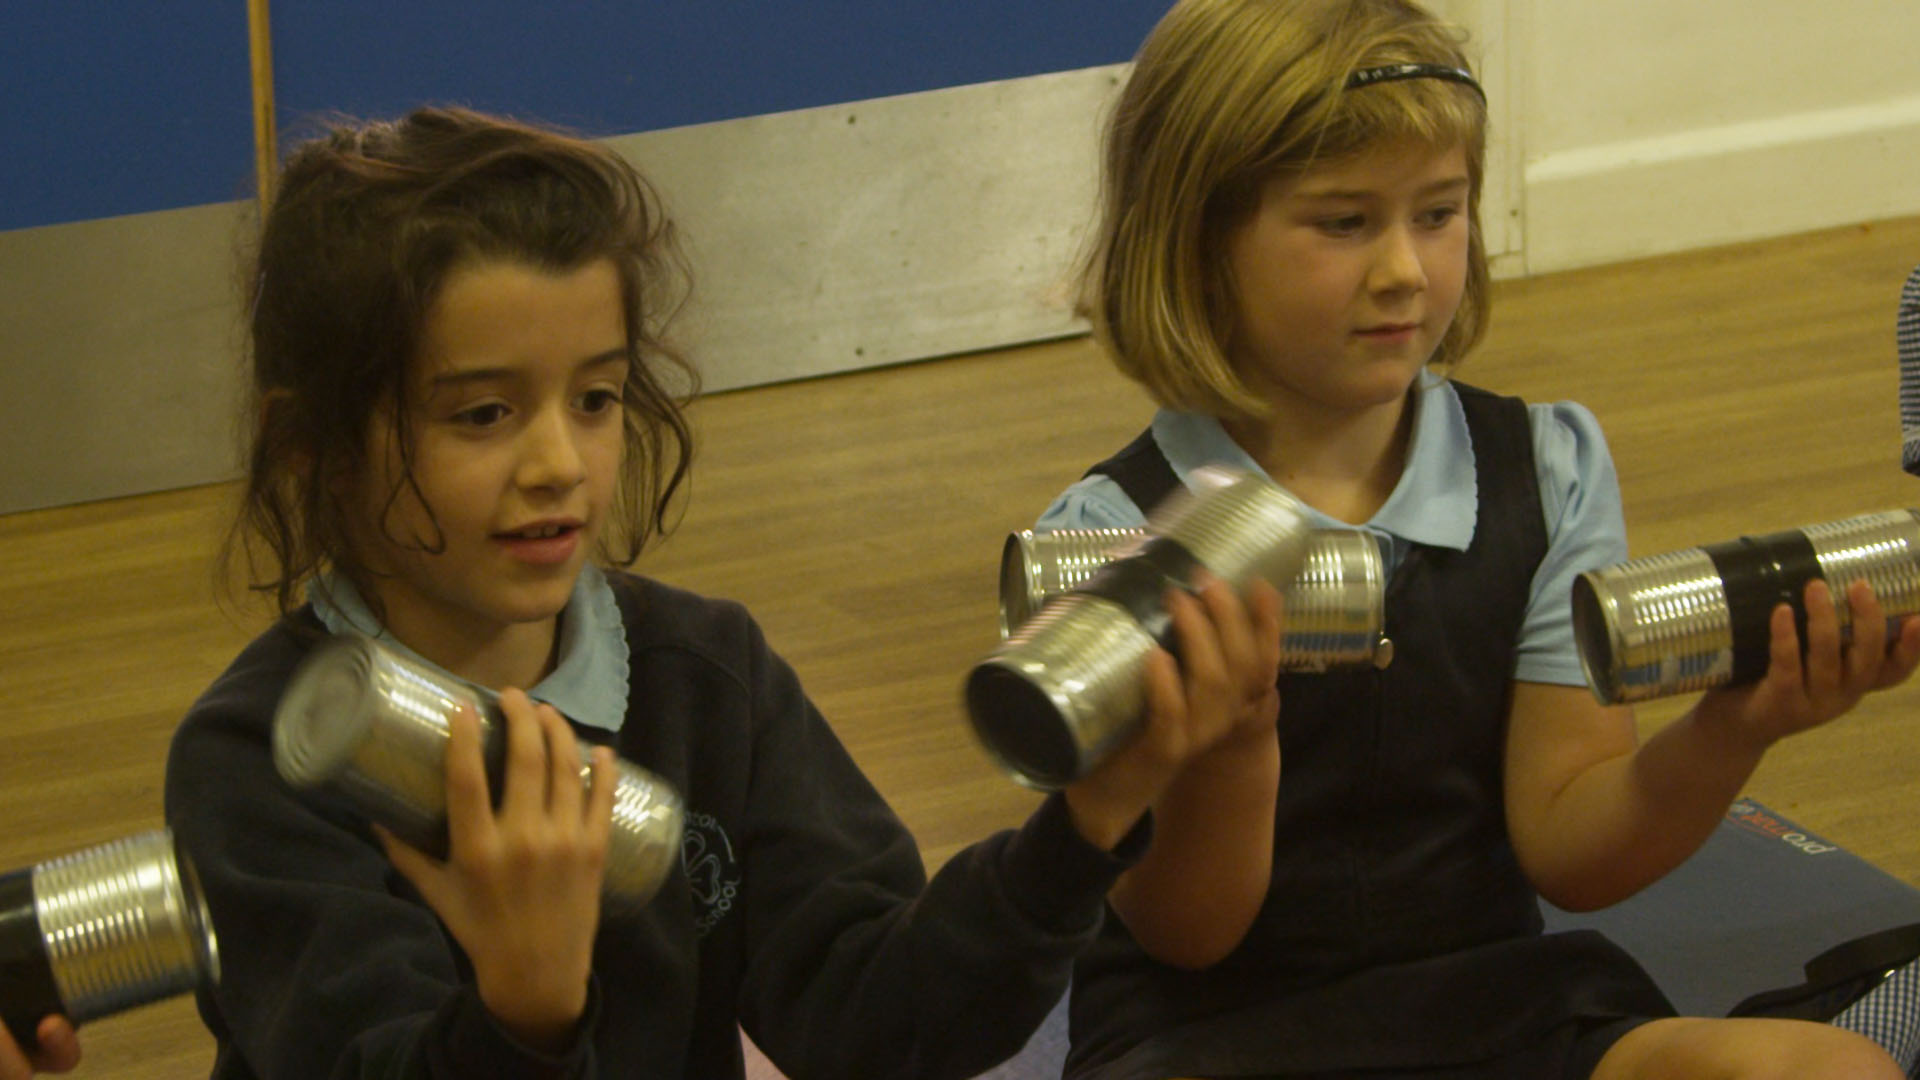 School children playing music on recycled tin cans